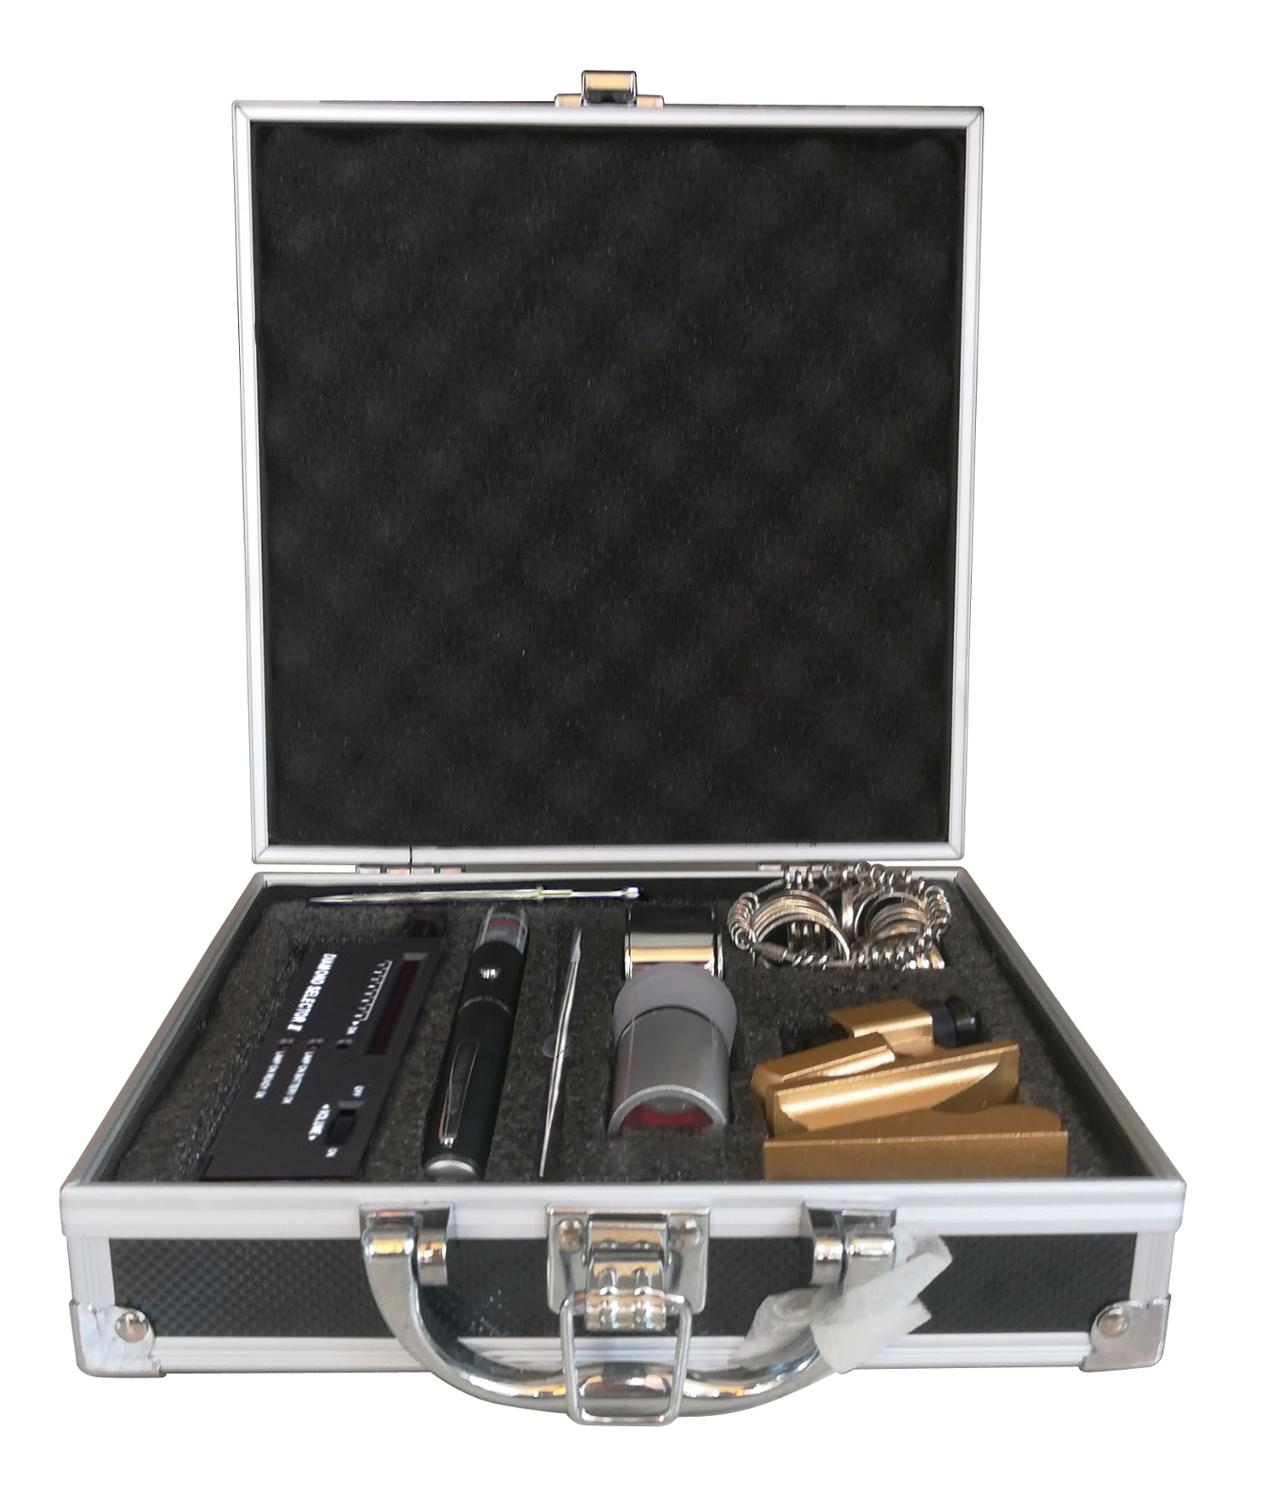 GIA Loupe Magnifier Diamond Gemstones Testing Tool Box Professional Diamond Tester Tool Set